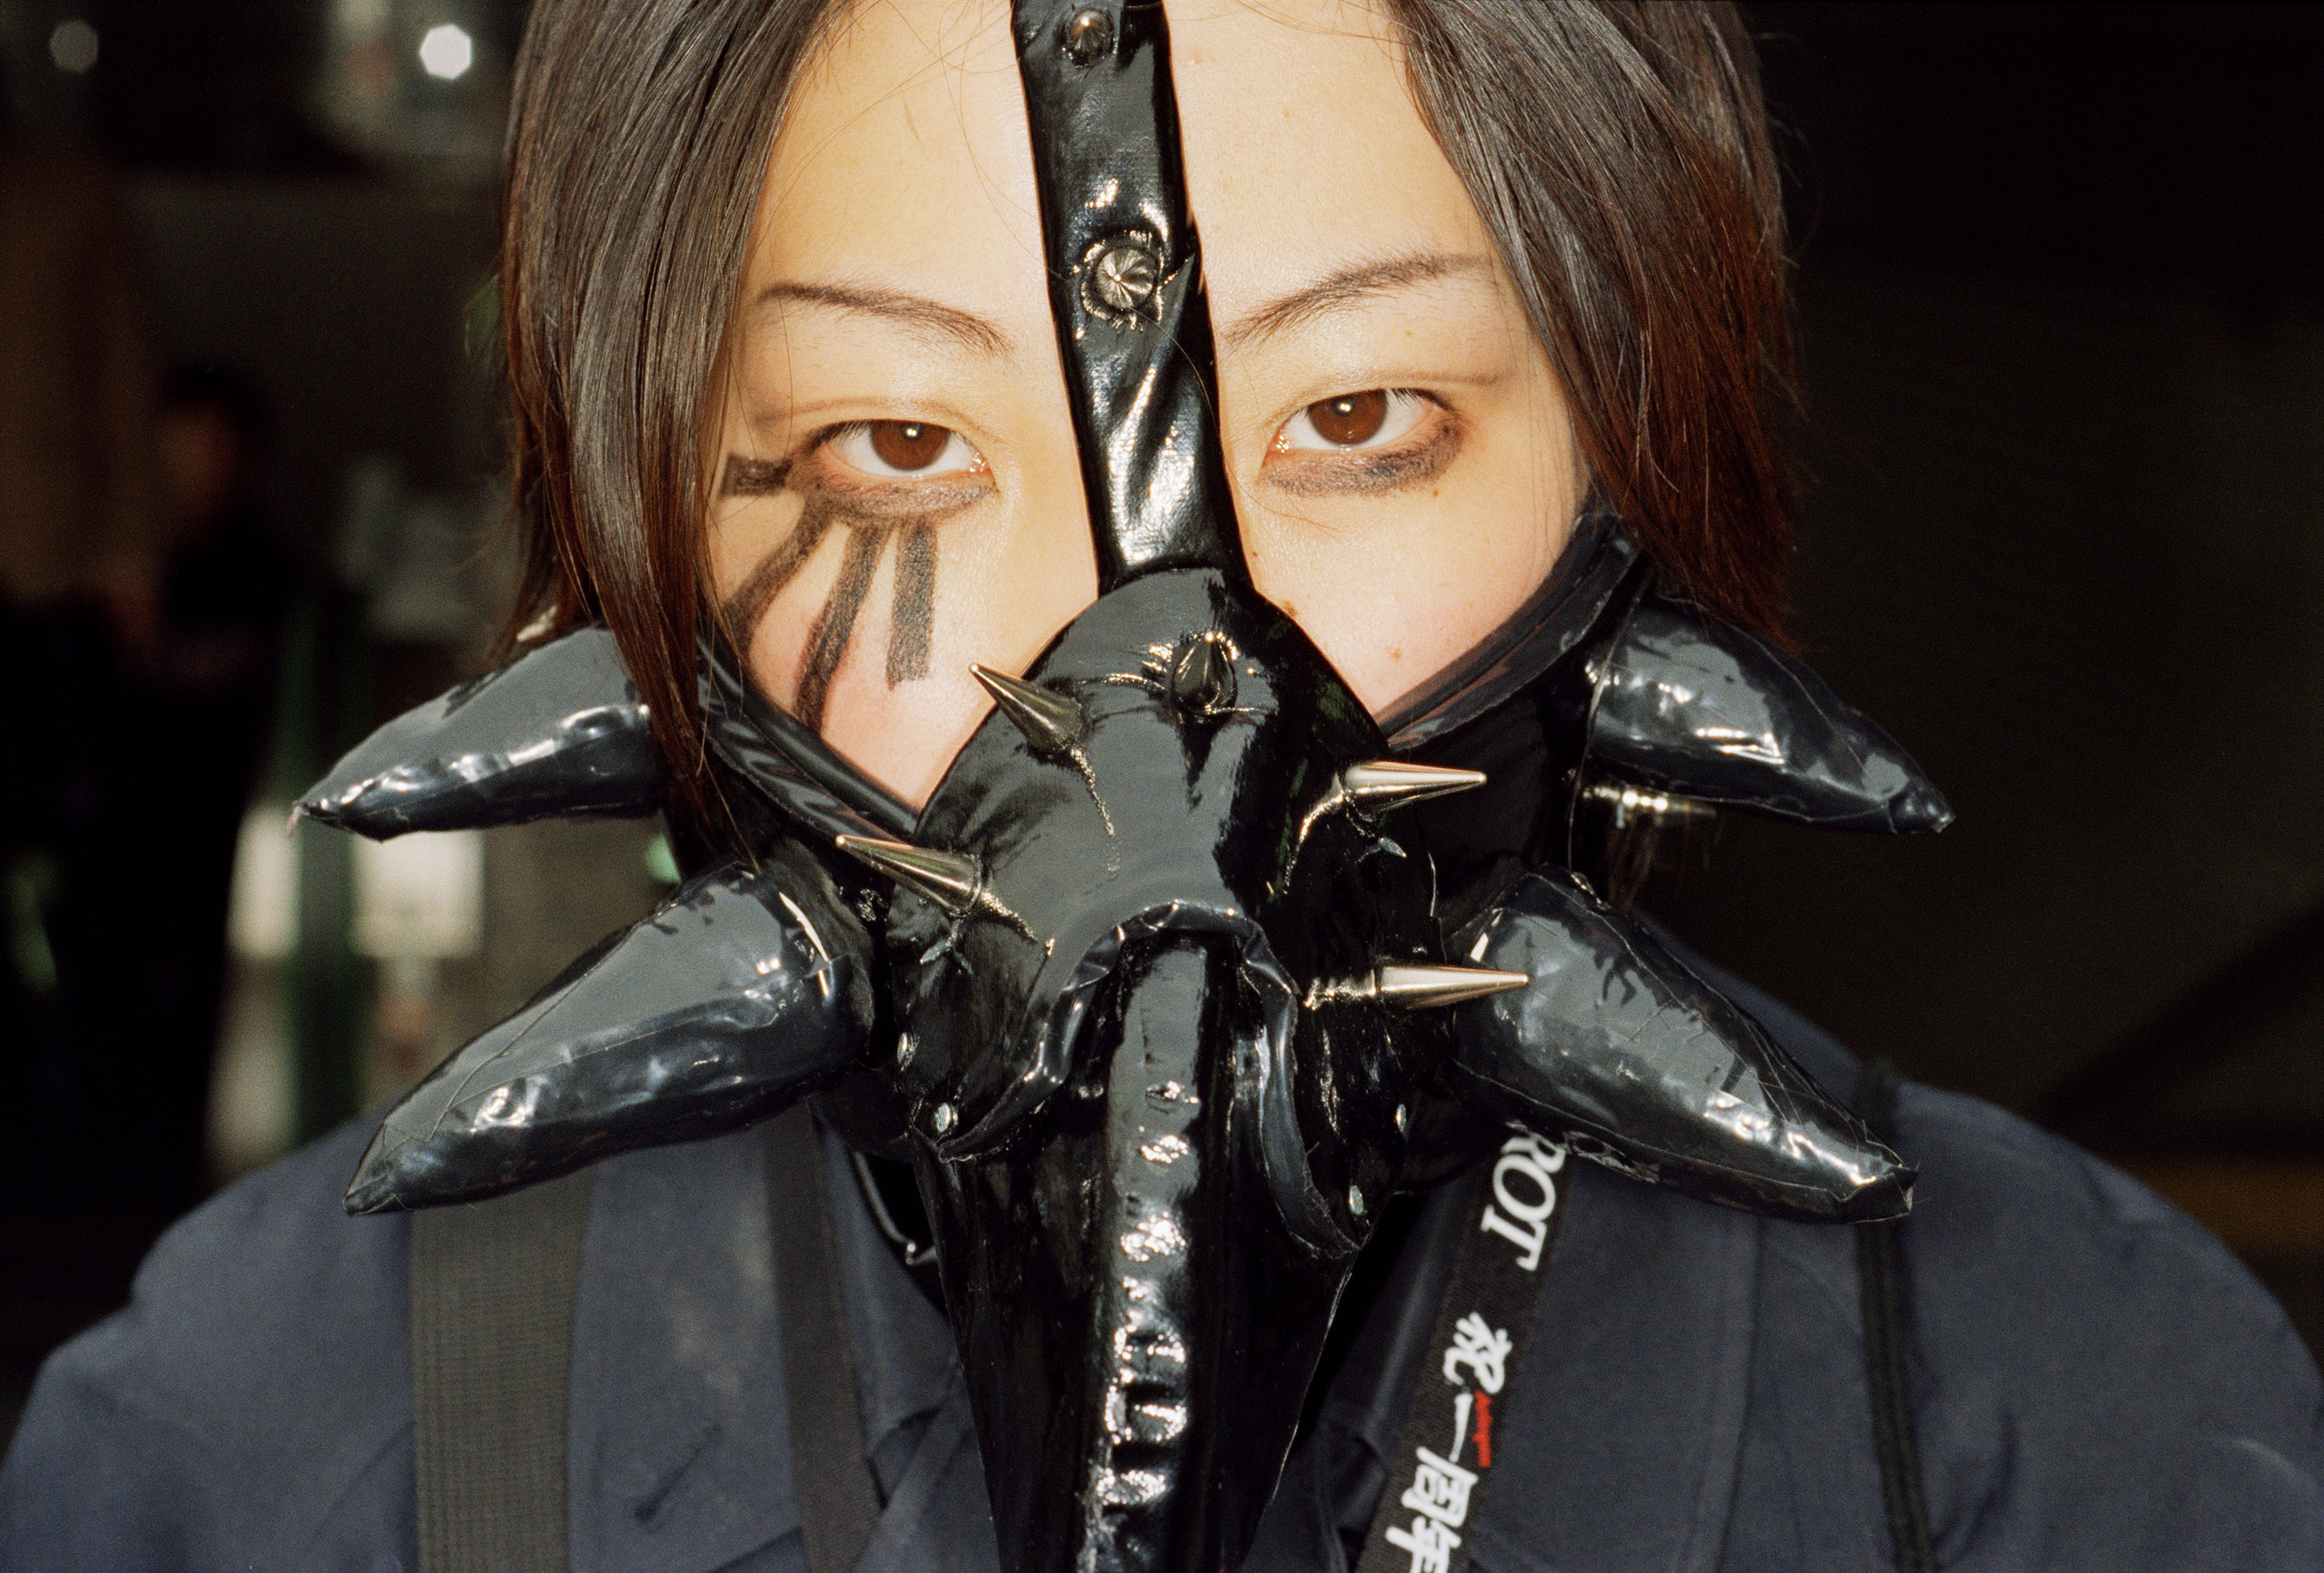 Teenage girl wearing a black dominatrix mask. Tokyo, 2000.